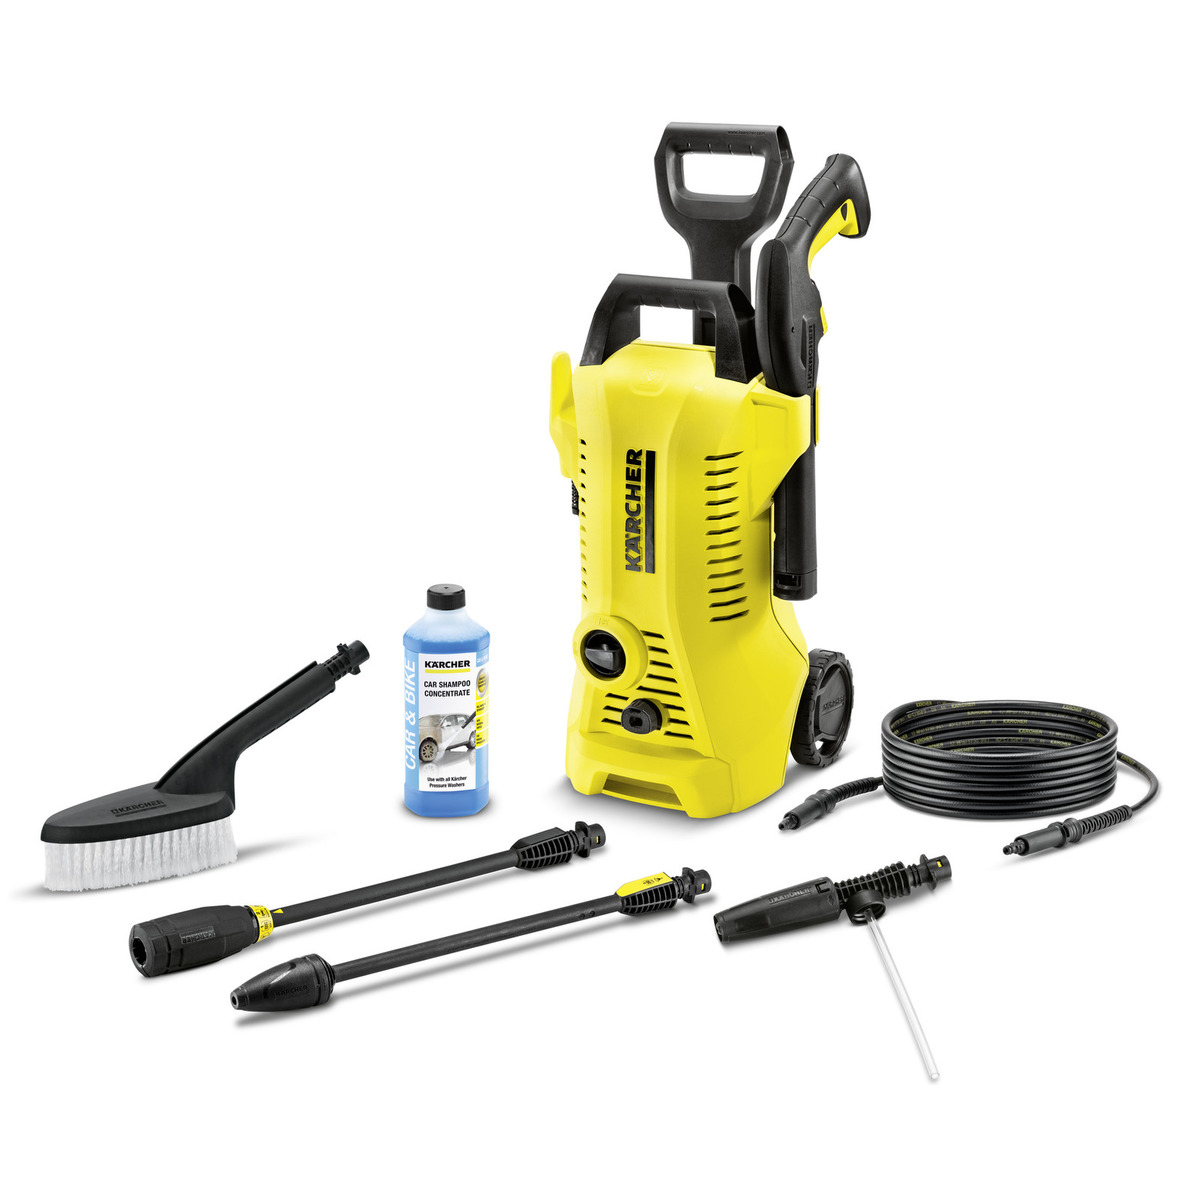 KARCHER 1.673-409.0 - K2 High Pressure Washer Compact